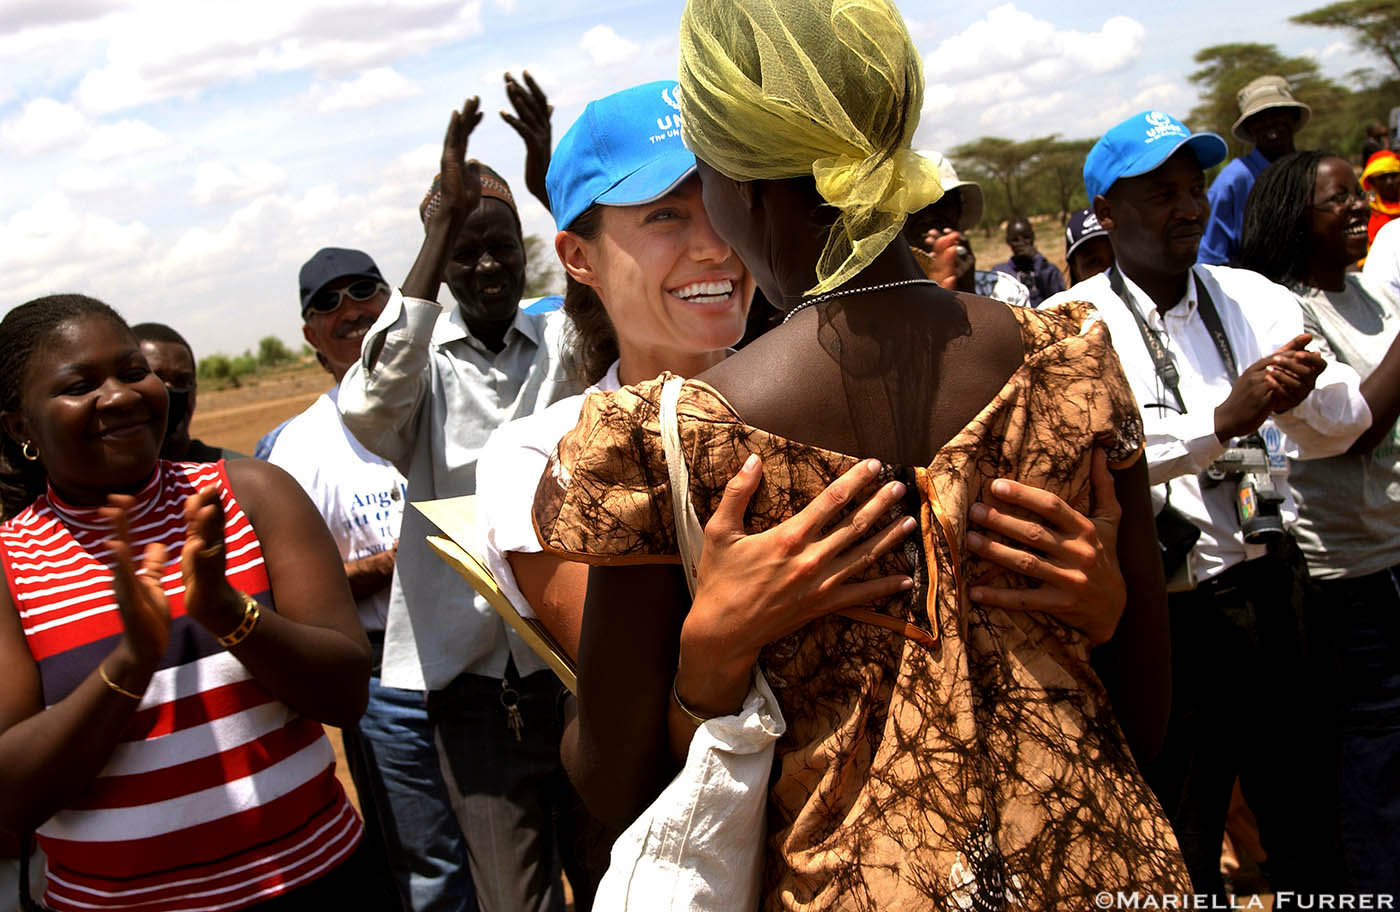 A refugee woman hugs Angelina Jolie, UNHCR Goodwill Ambassador, after a UNHCR official announces that she has given a donation so that the construction of a woman's centre can begin straight away. (**The woman is incharge of the centre to be built I think**). Kakuma refugee camp, Northern Kenya.